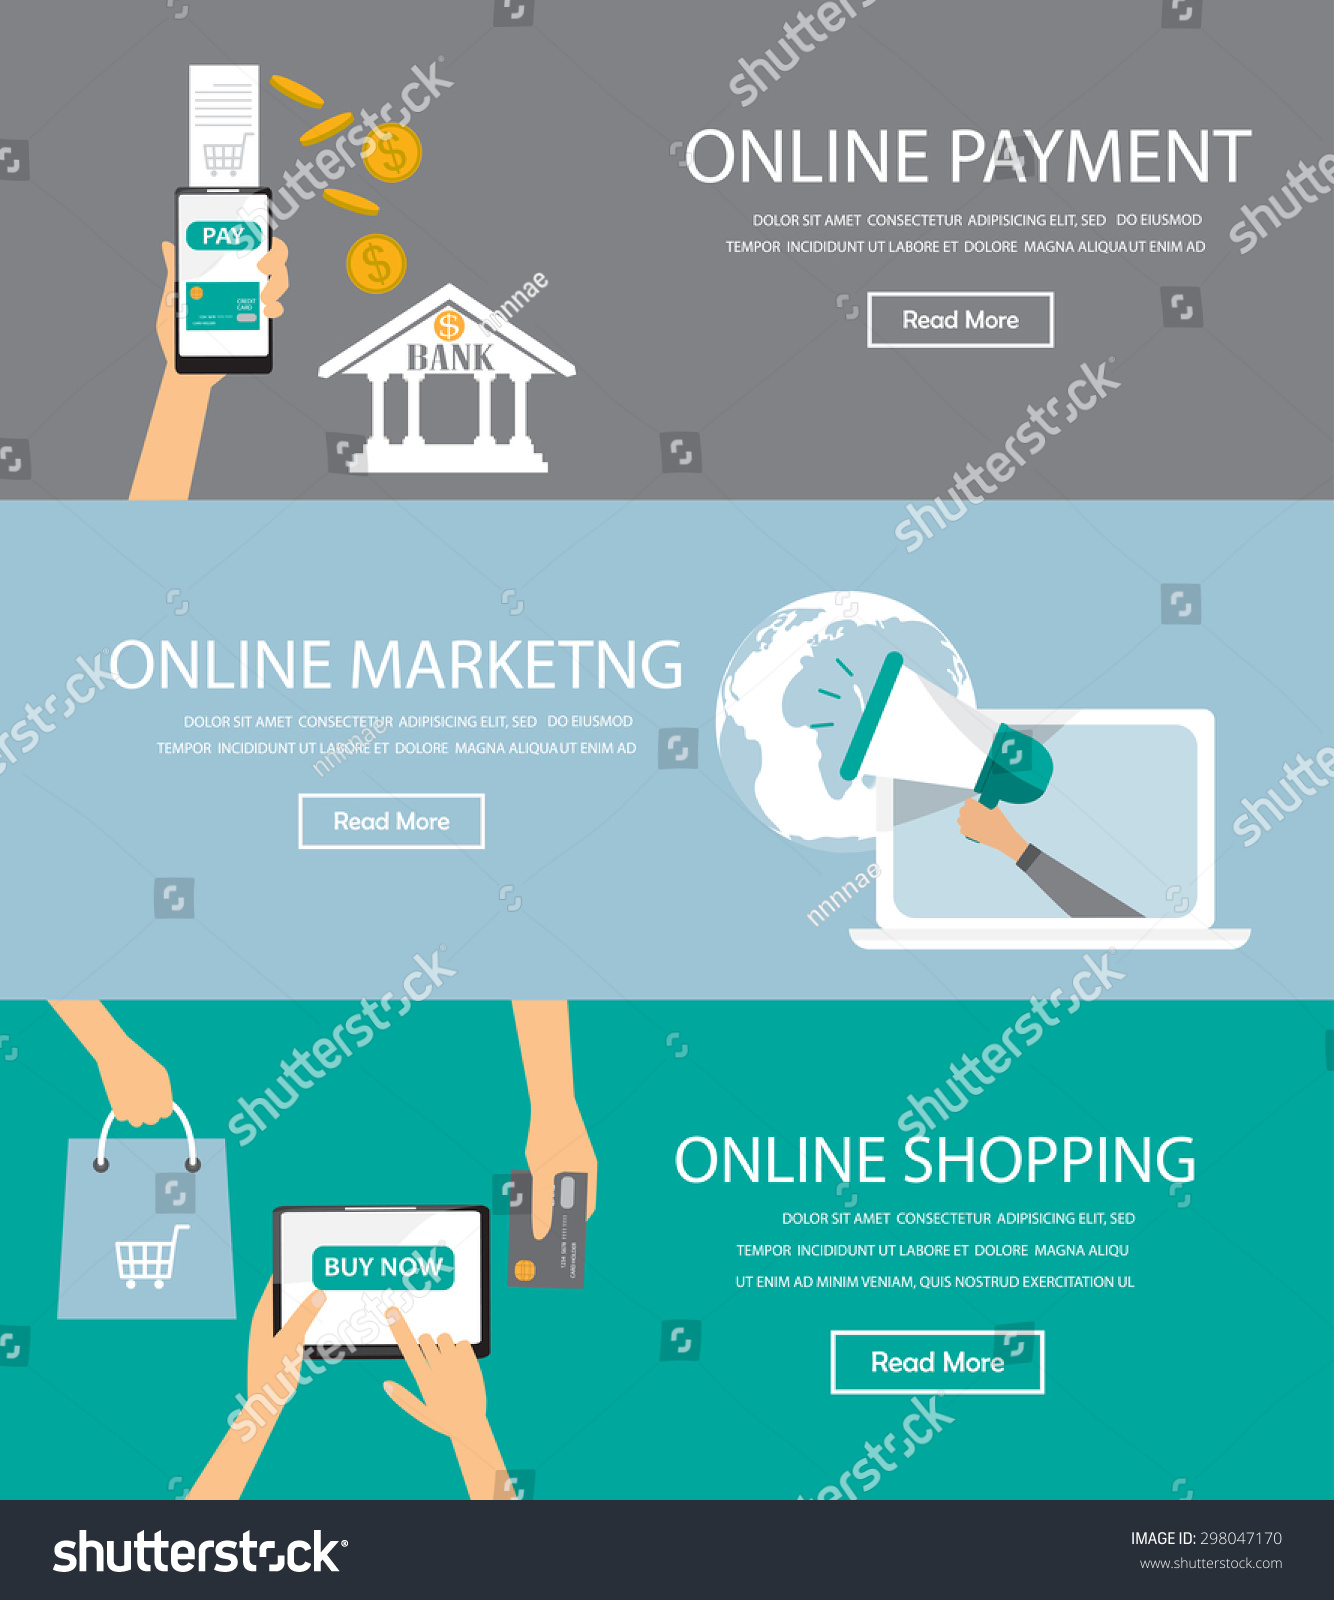 Online Shopping Mode Of Payment Online Marketing Shopping Payment Infographics Element